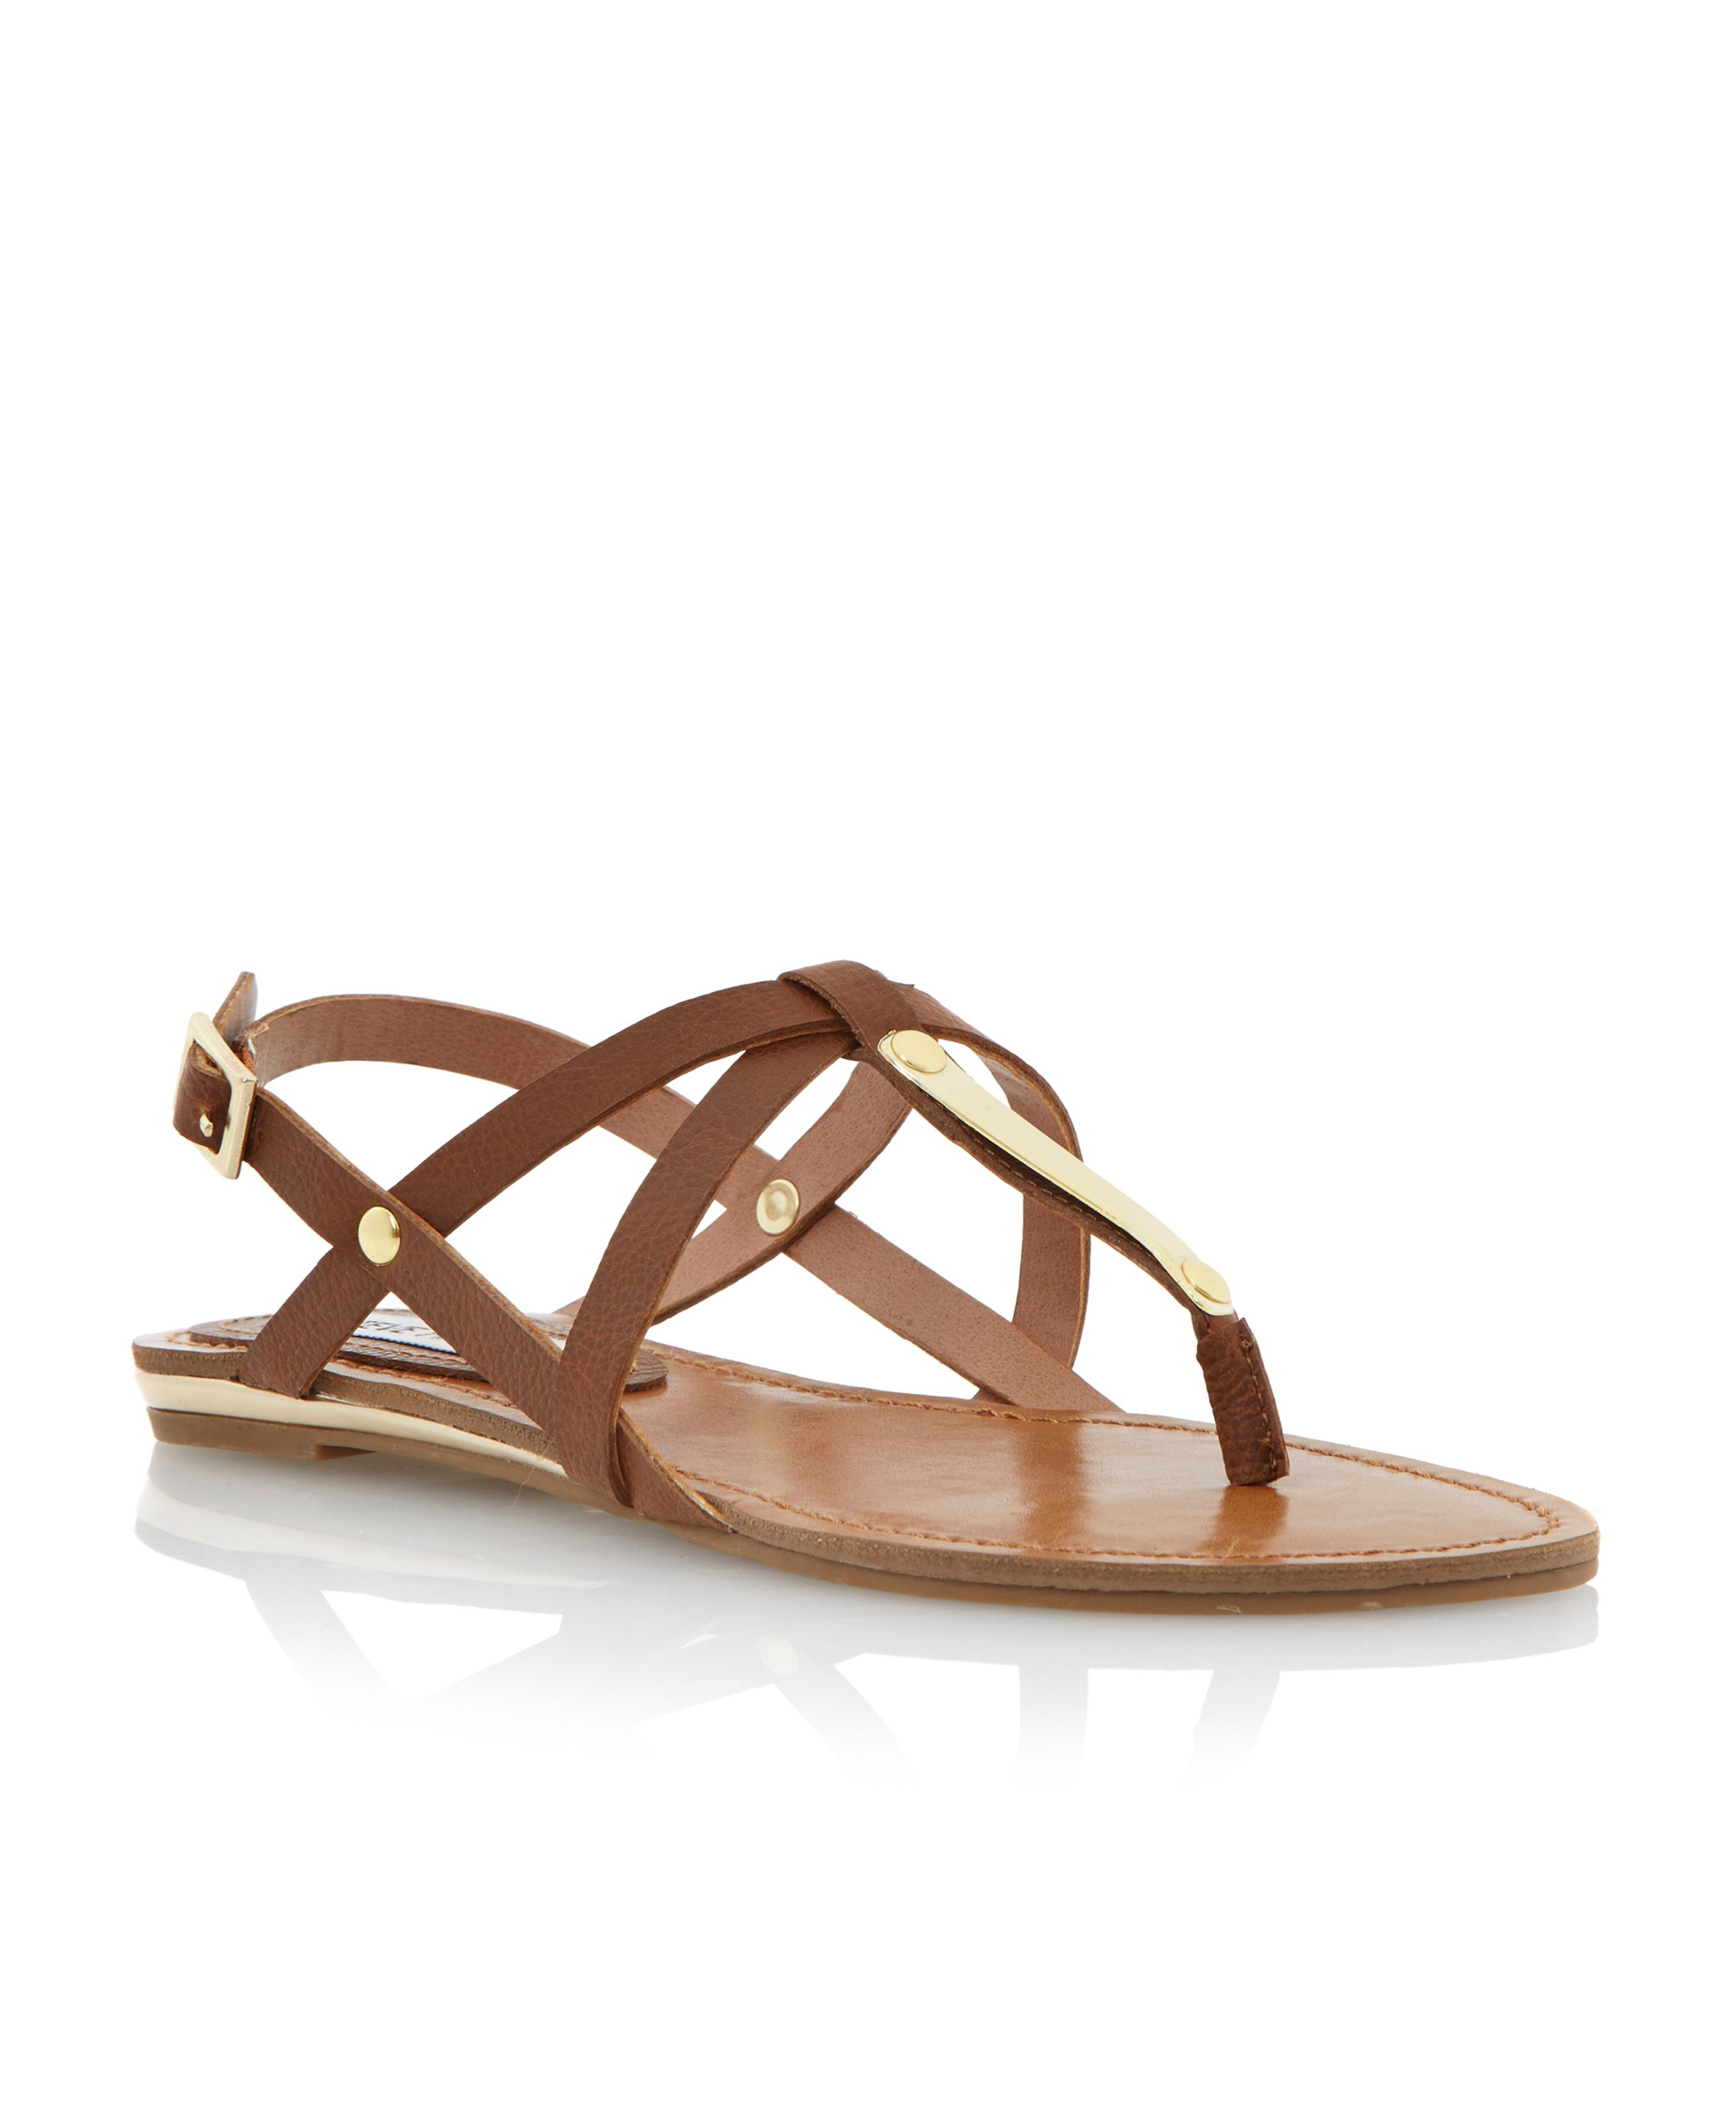 Henna metal detail toe post flat sandals